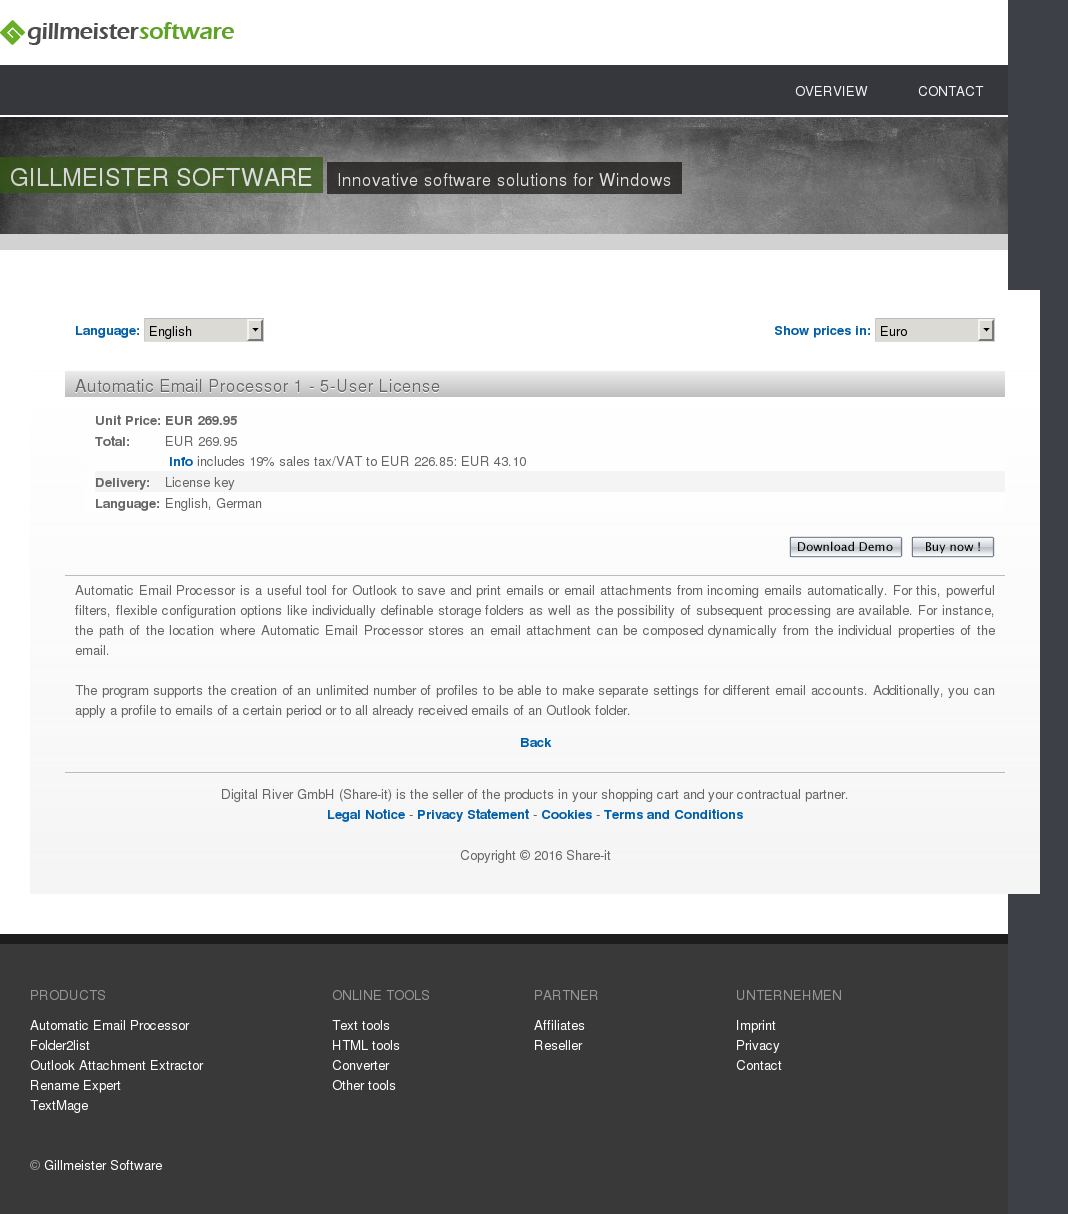 Automatic Email Processor 1 - 5-User License